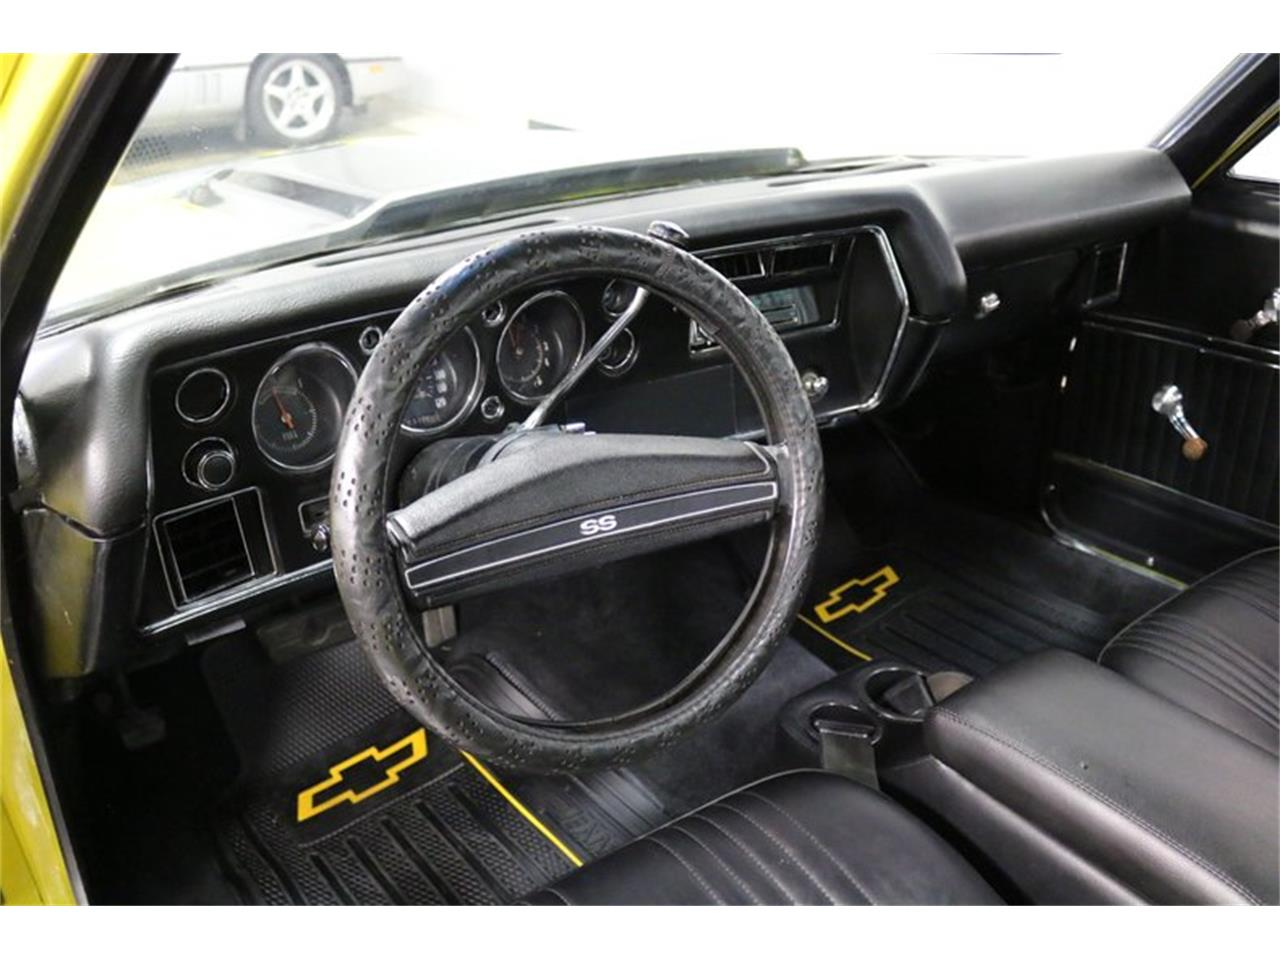 1970 Chevrolet El Camino for sale in Ft Worth, TX – photo 47